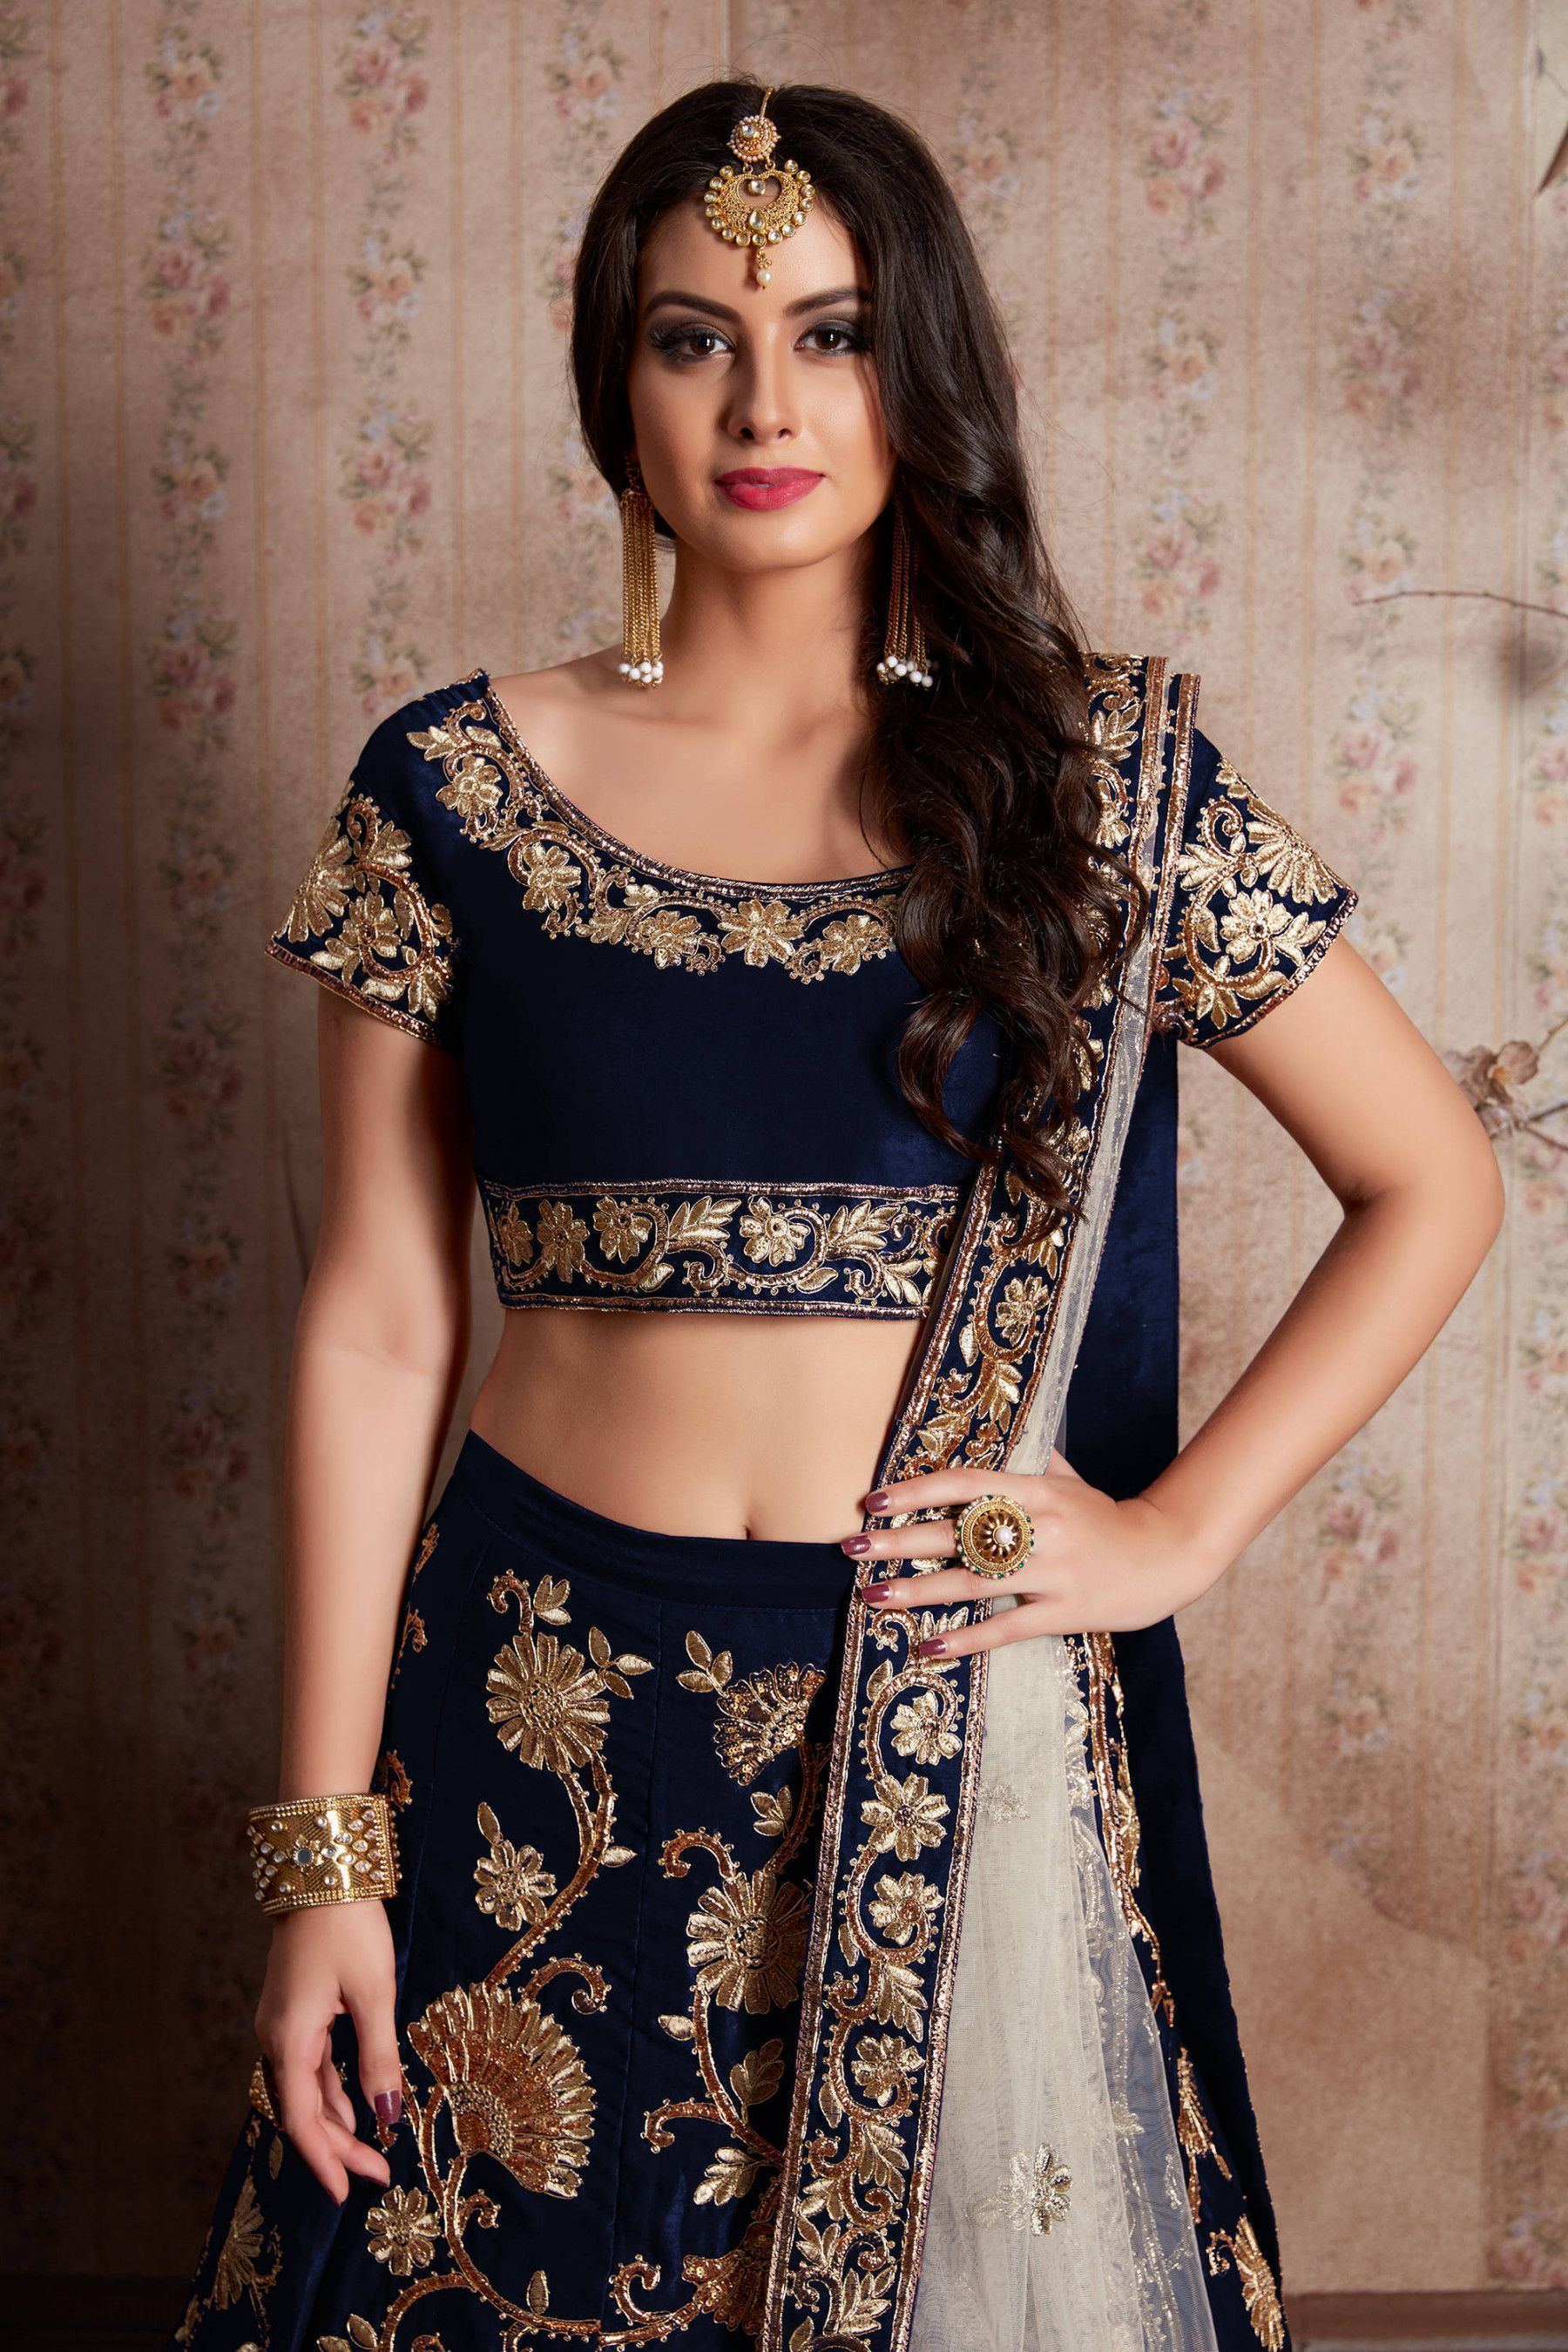 Buy Navy Blue Embroidered Velvet Bridal Lehenga Choli With Dupatta Online From Ethnicplus For 4 849 00